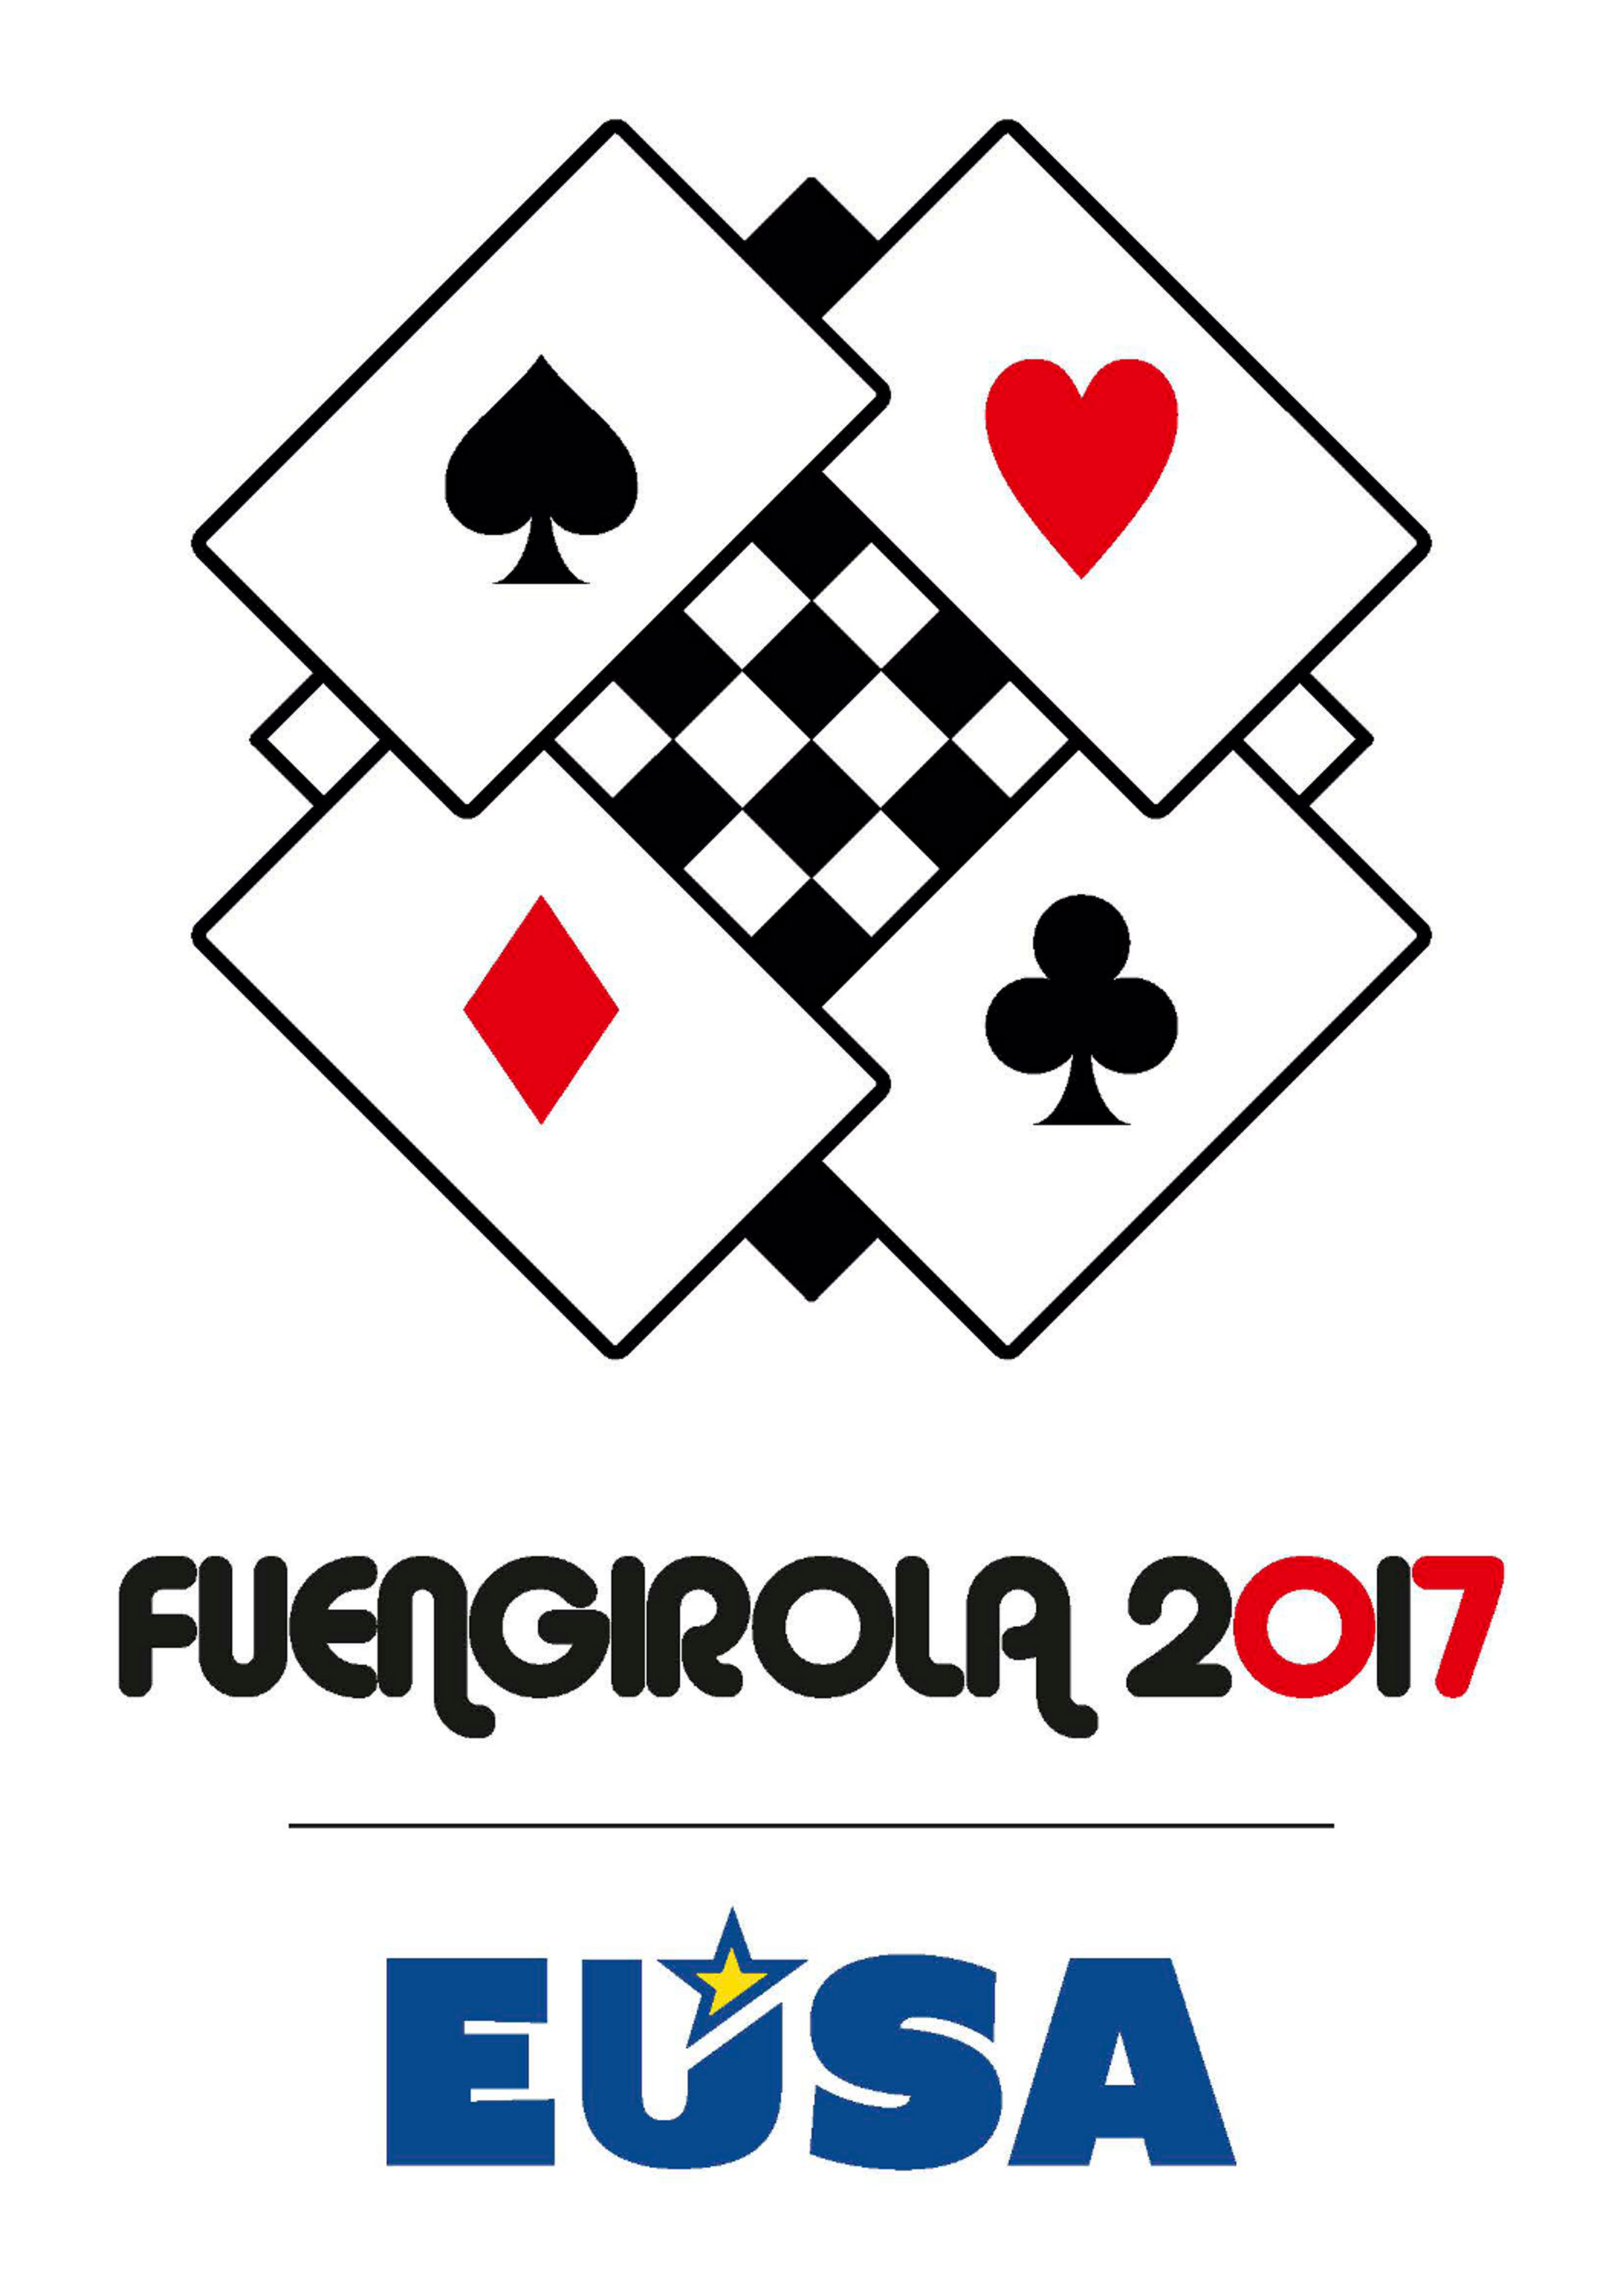 European Univetsities Chess Championship 2017 EUSA Fuengirola Spain logo